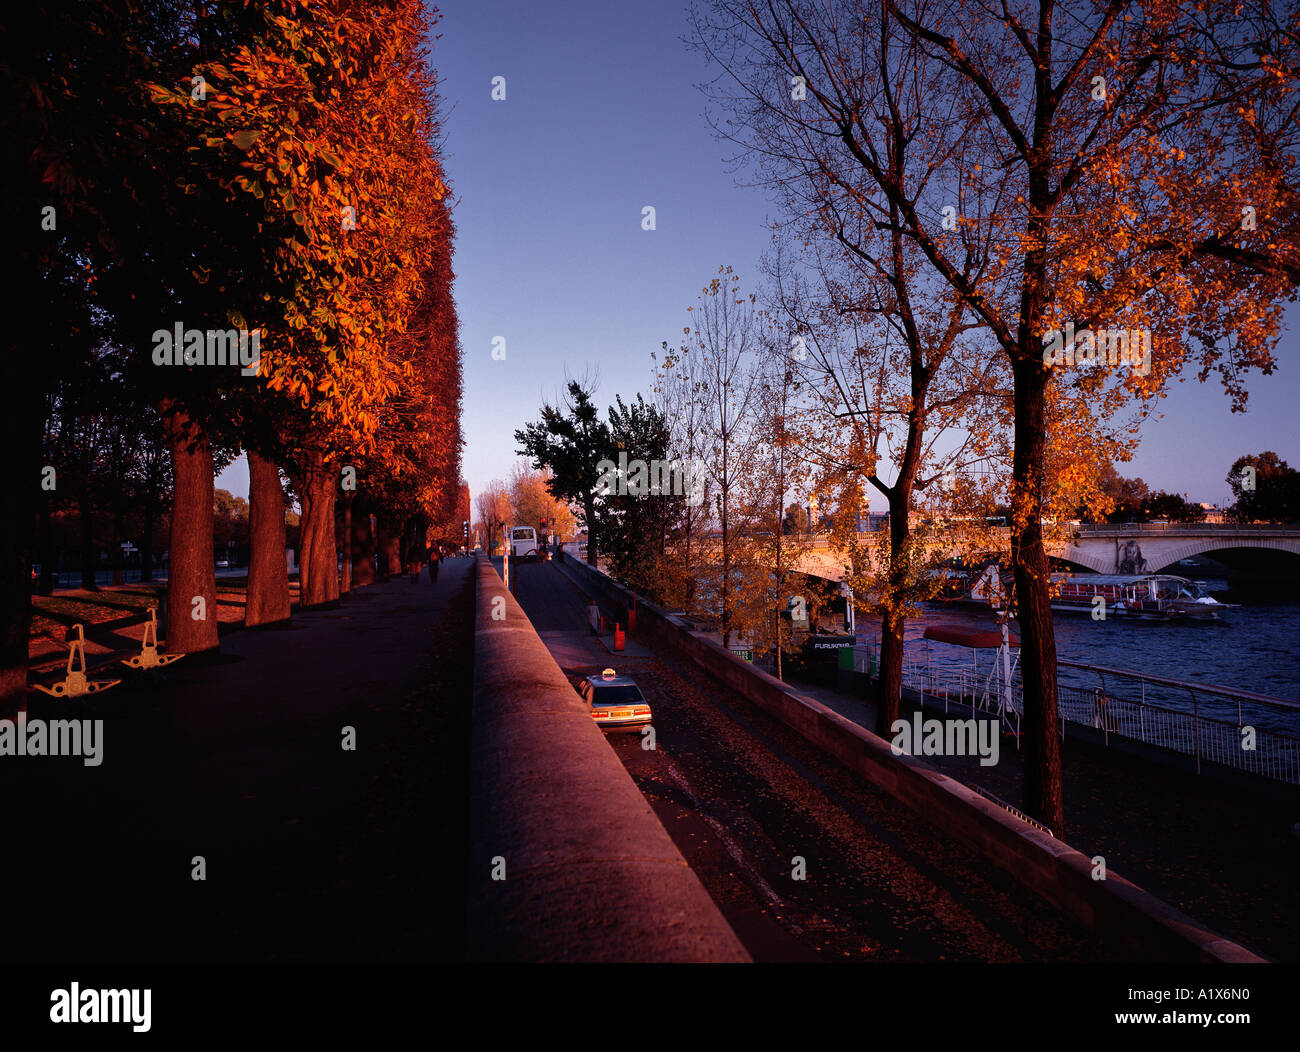 A beautiful late afternoon in autumn, Seine river, Paris, France. - Stock Image